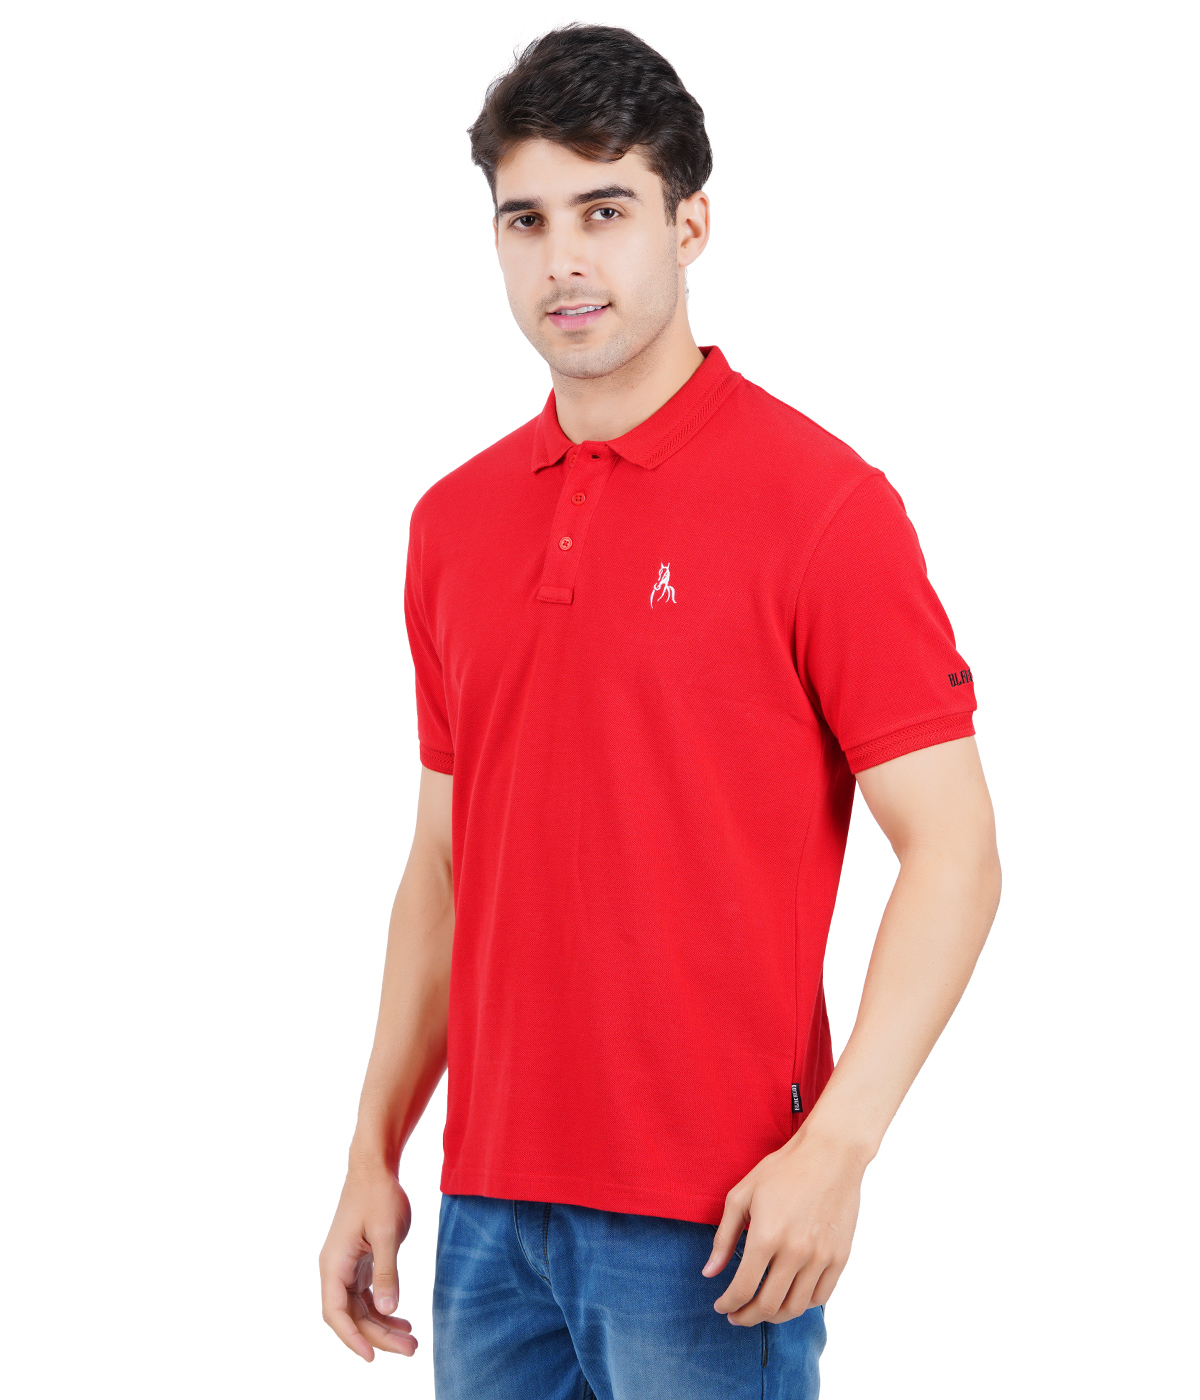 Corporate Polo T Shirt